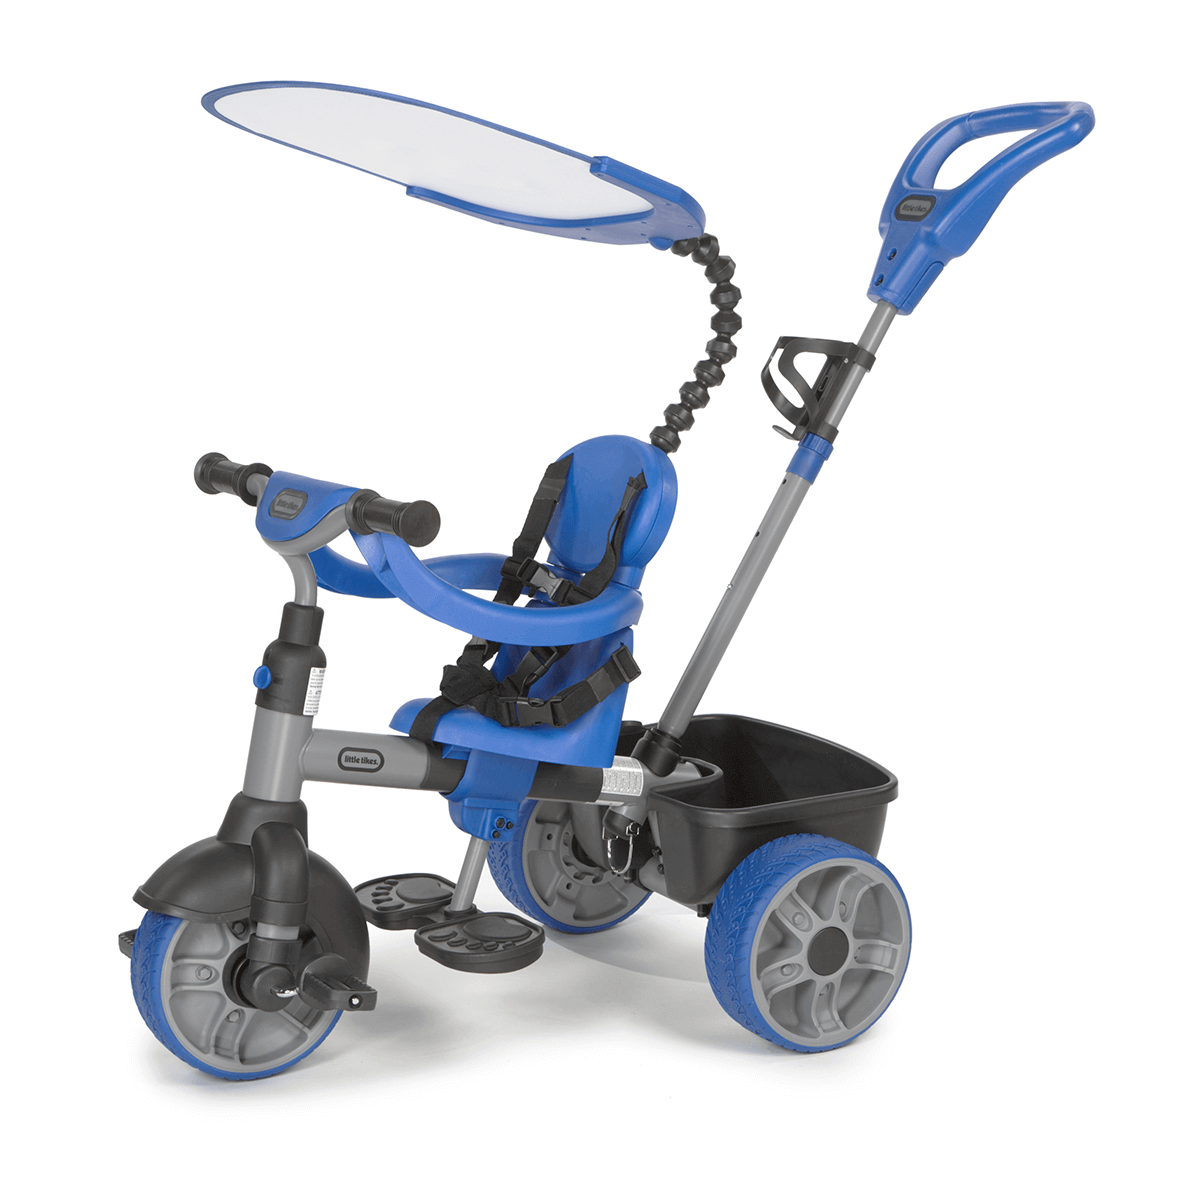 Little Tikes 4in1 Navy Blue Trike Walkers and rideons